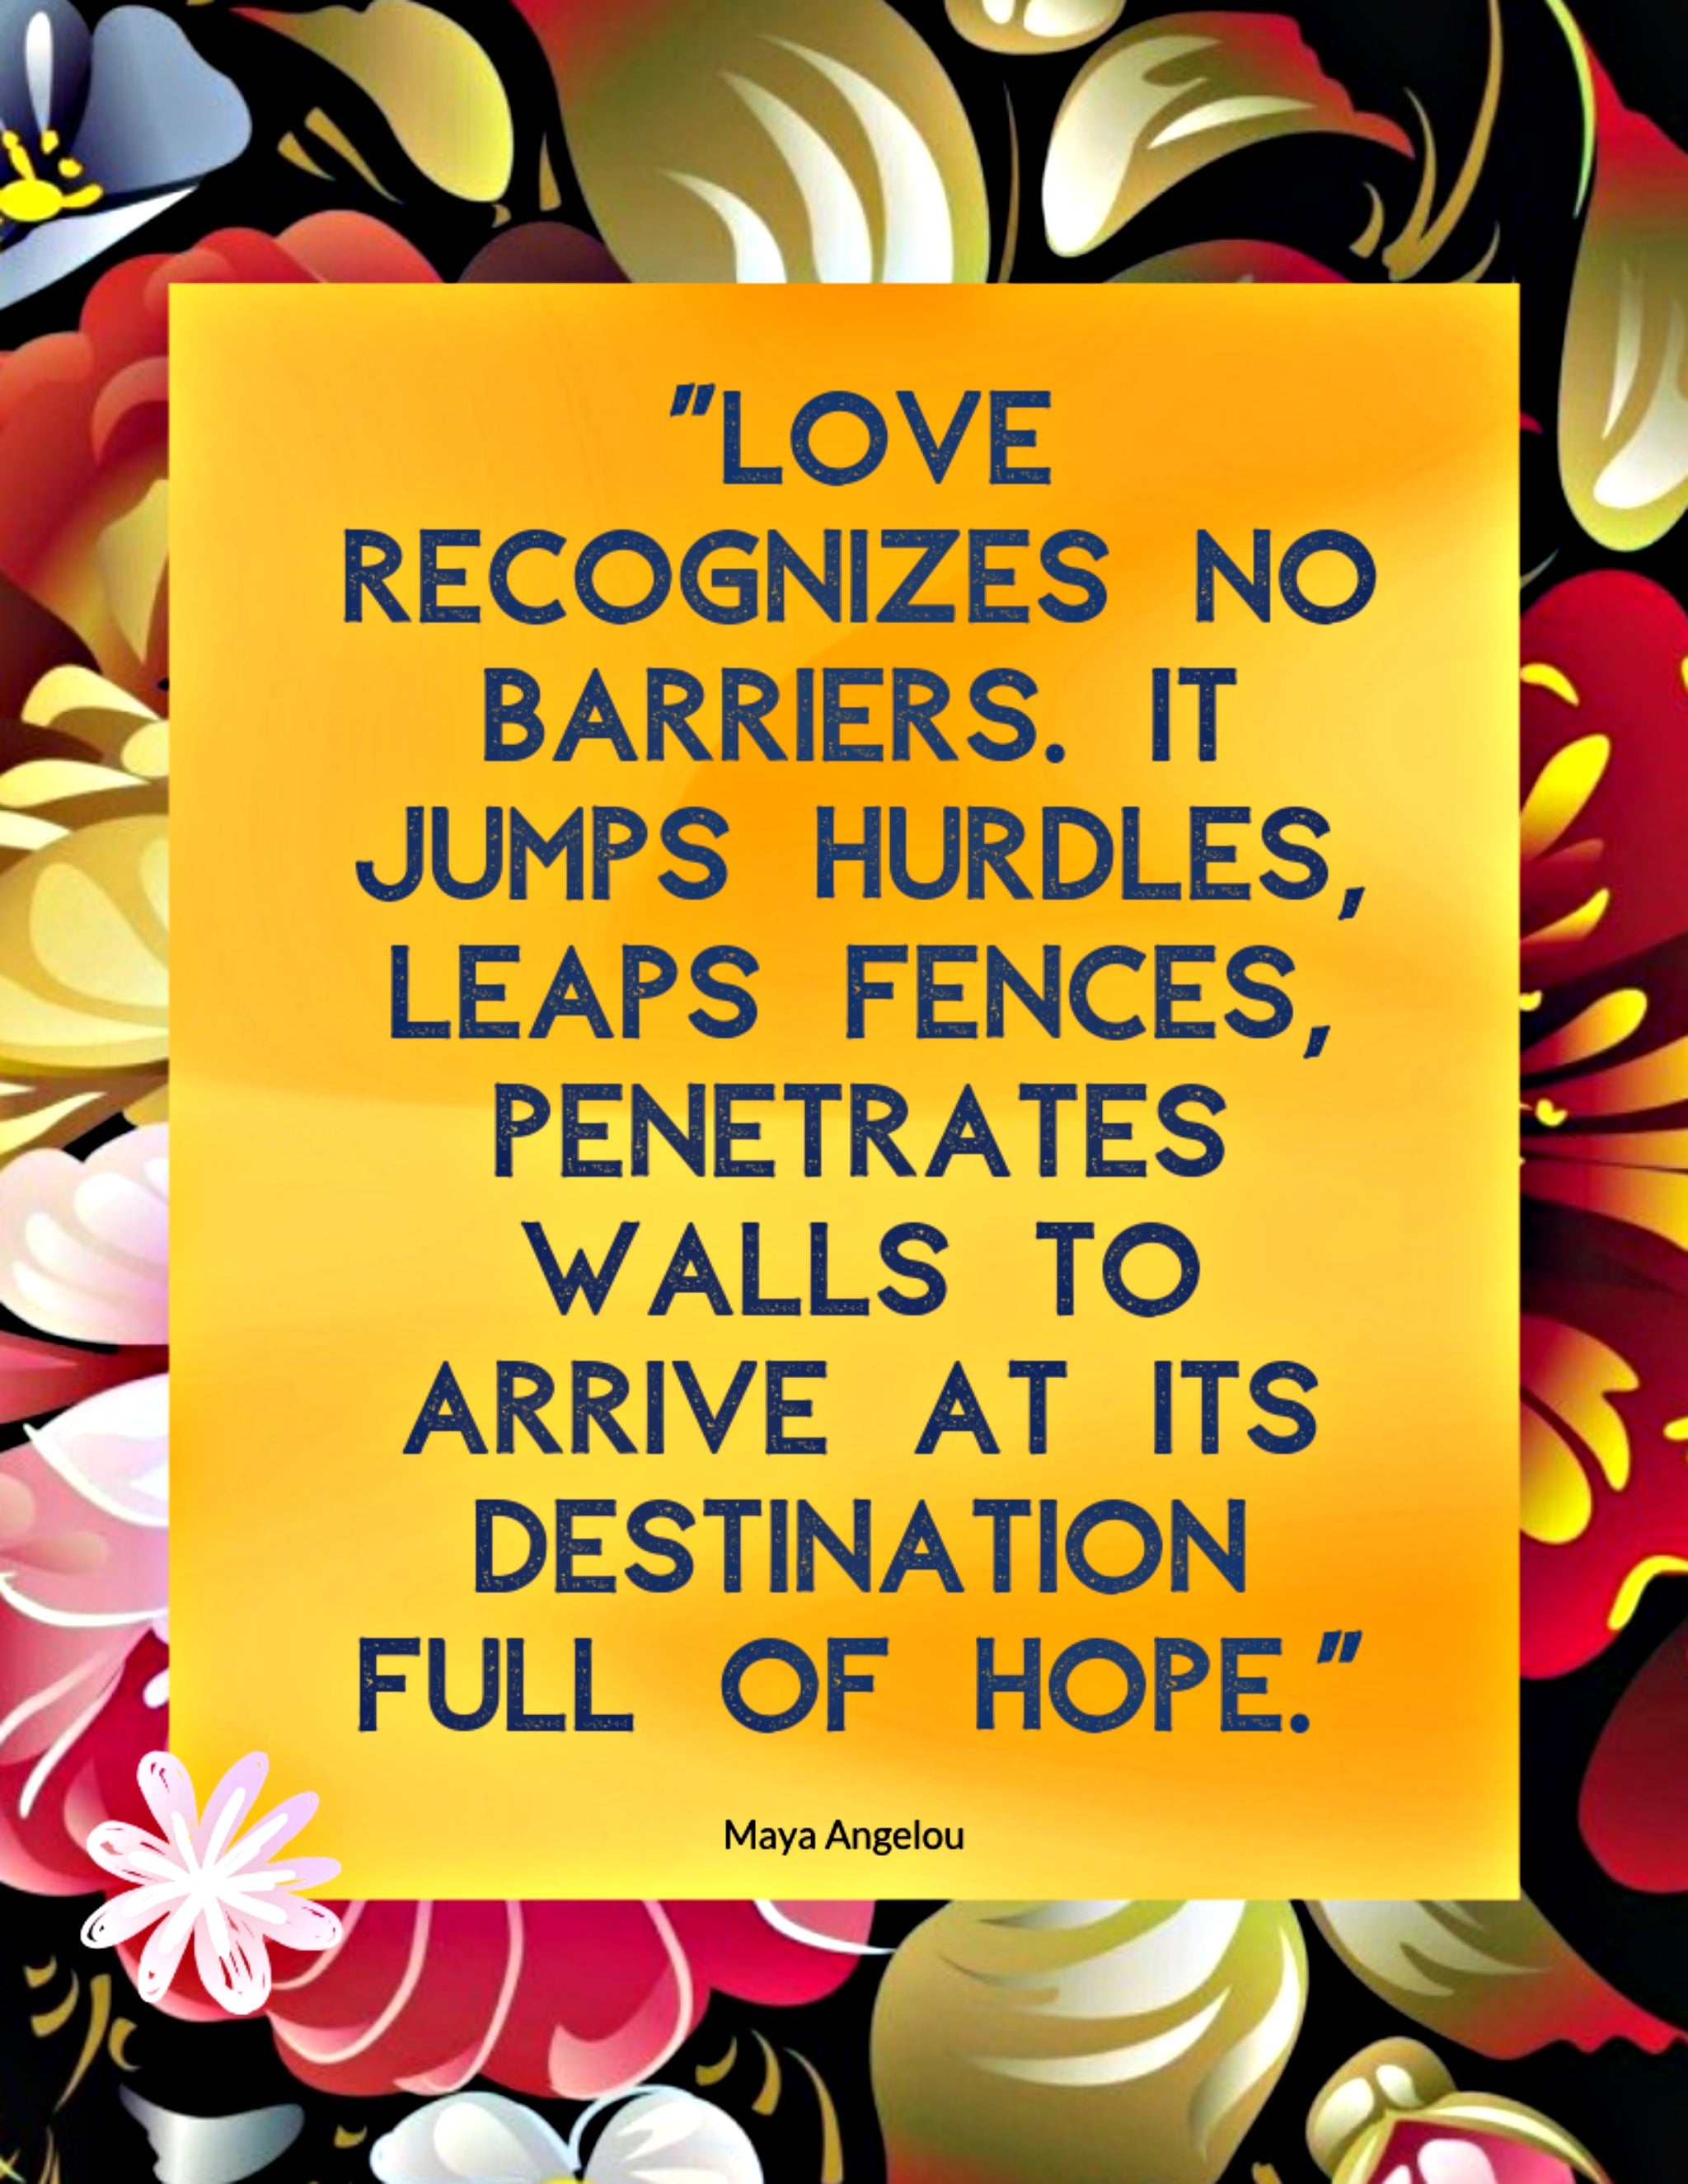 Quote: Love recognizes no barriers. It jumps hurdles, leaps fences, penetrates walls to arrive at its destination full of hope. Maya Angelou